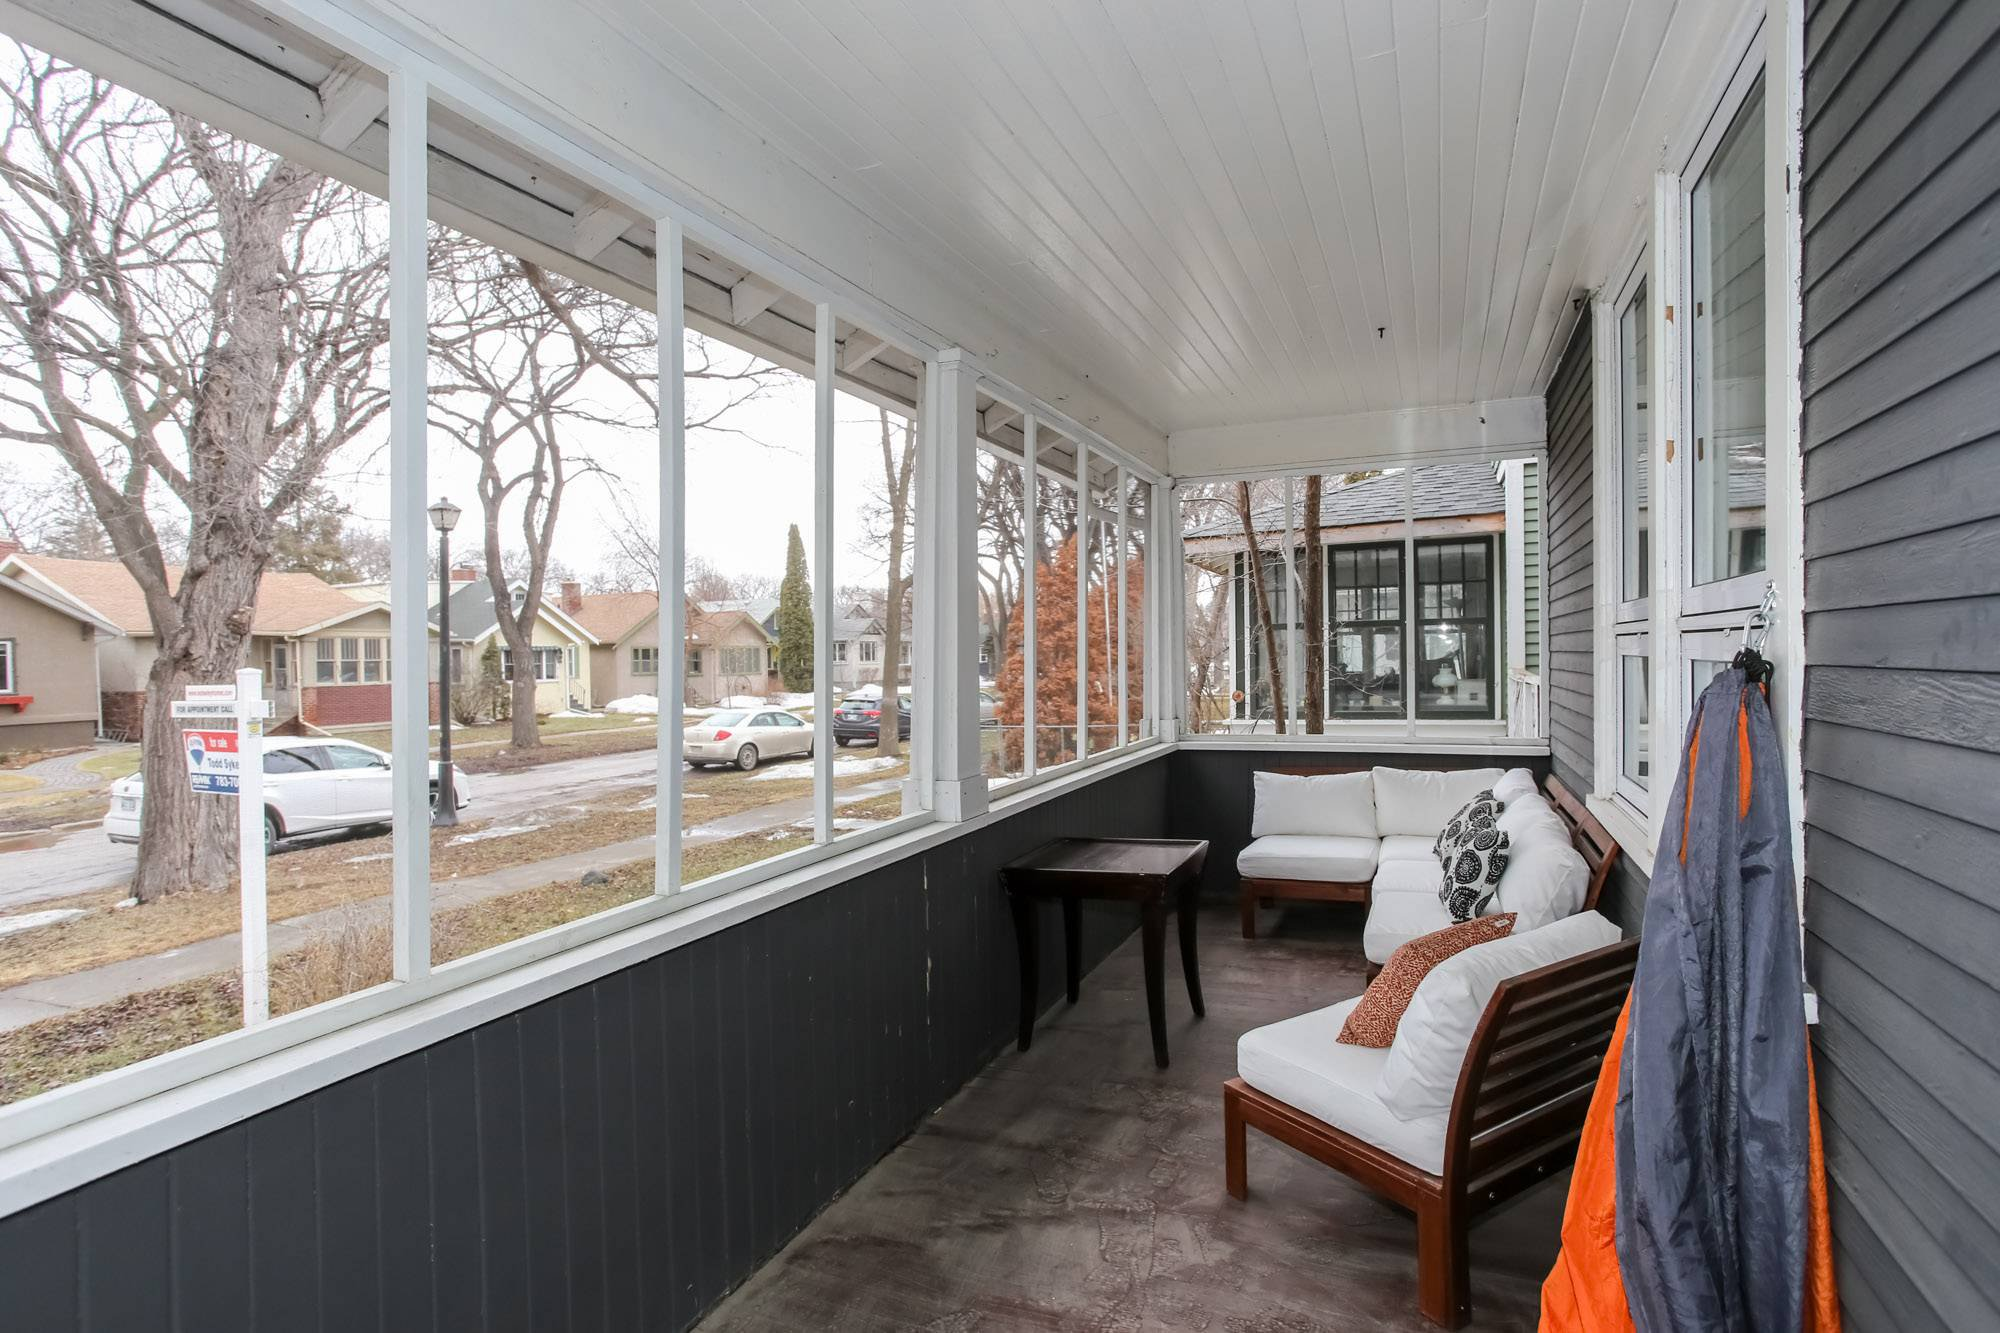 Photo 3: Photos: 528 Sprague Street in Winnipeg: Wolseley Single Family Detached for sale (5B)  : MLS®# 1907853